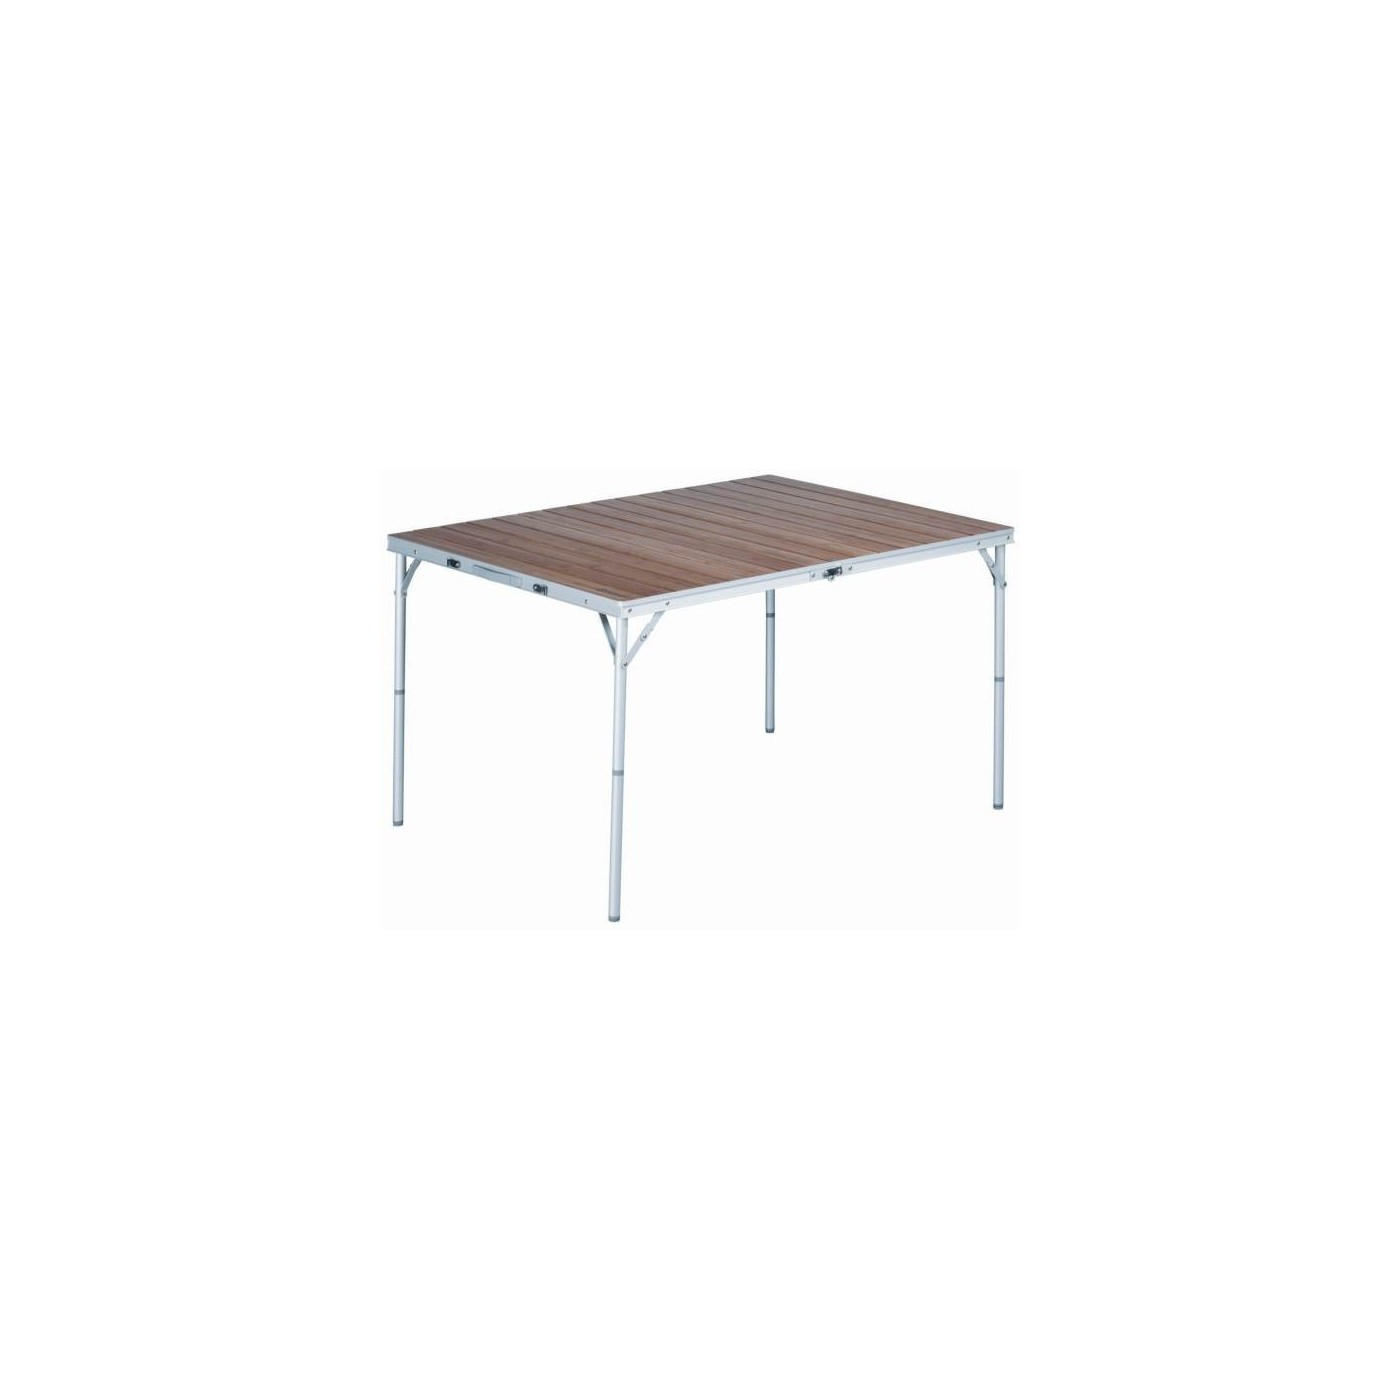 TABLE PLIABLE BAMBOU OUTWELL CALGARY L